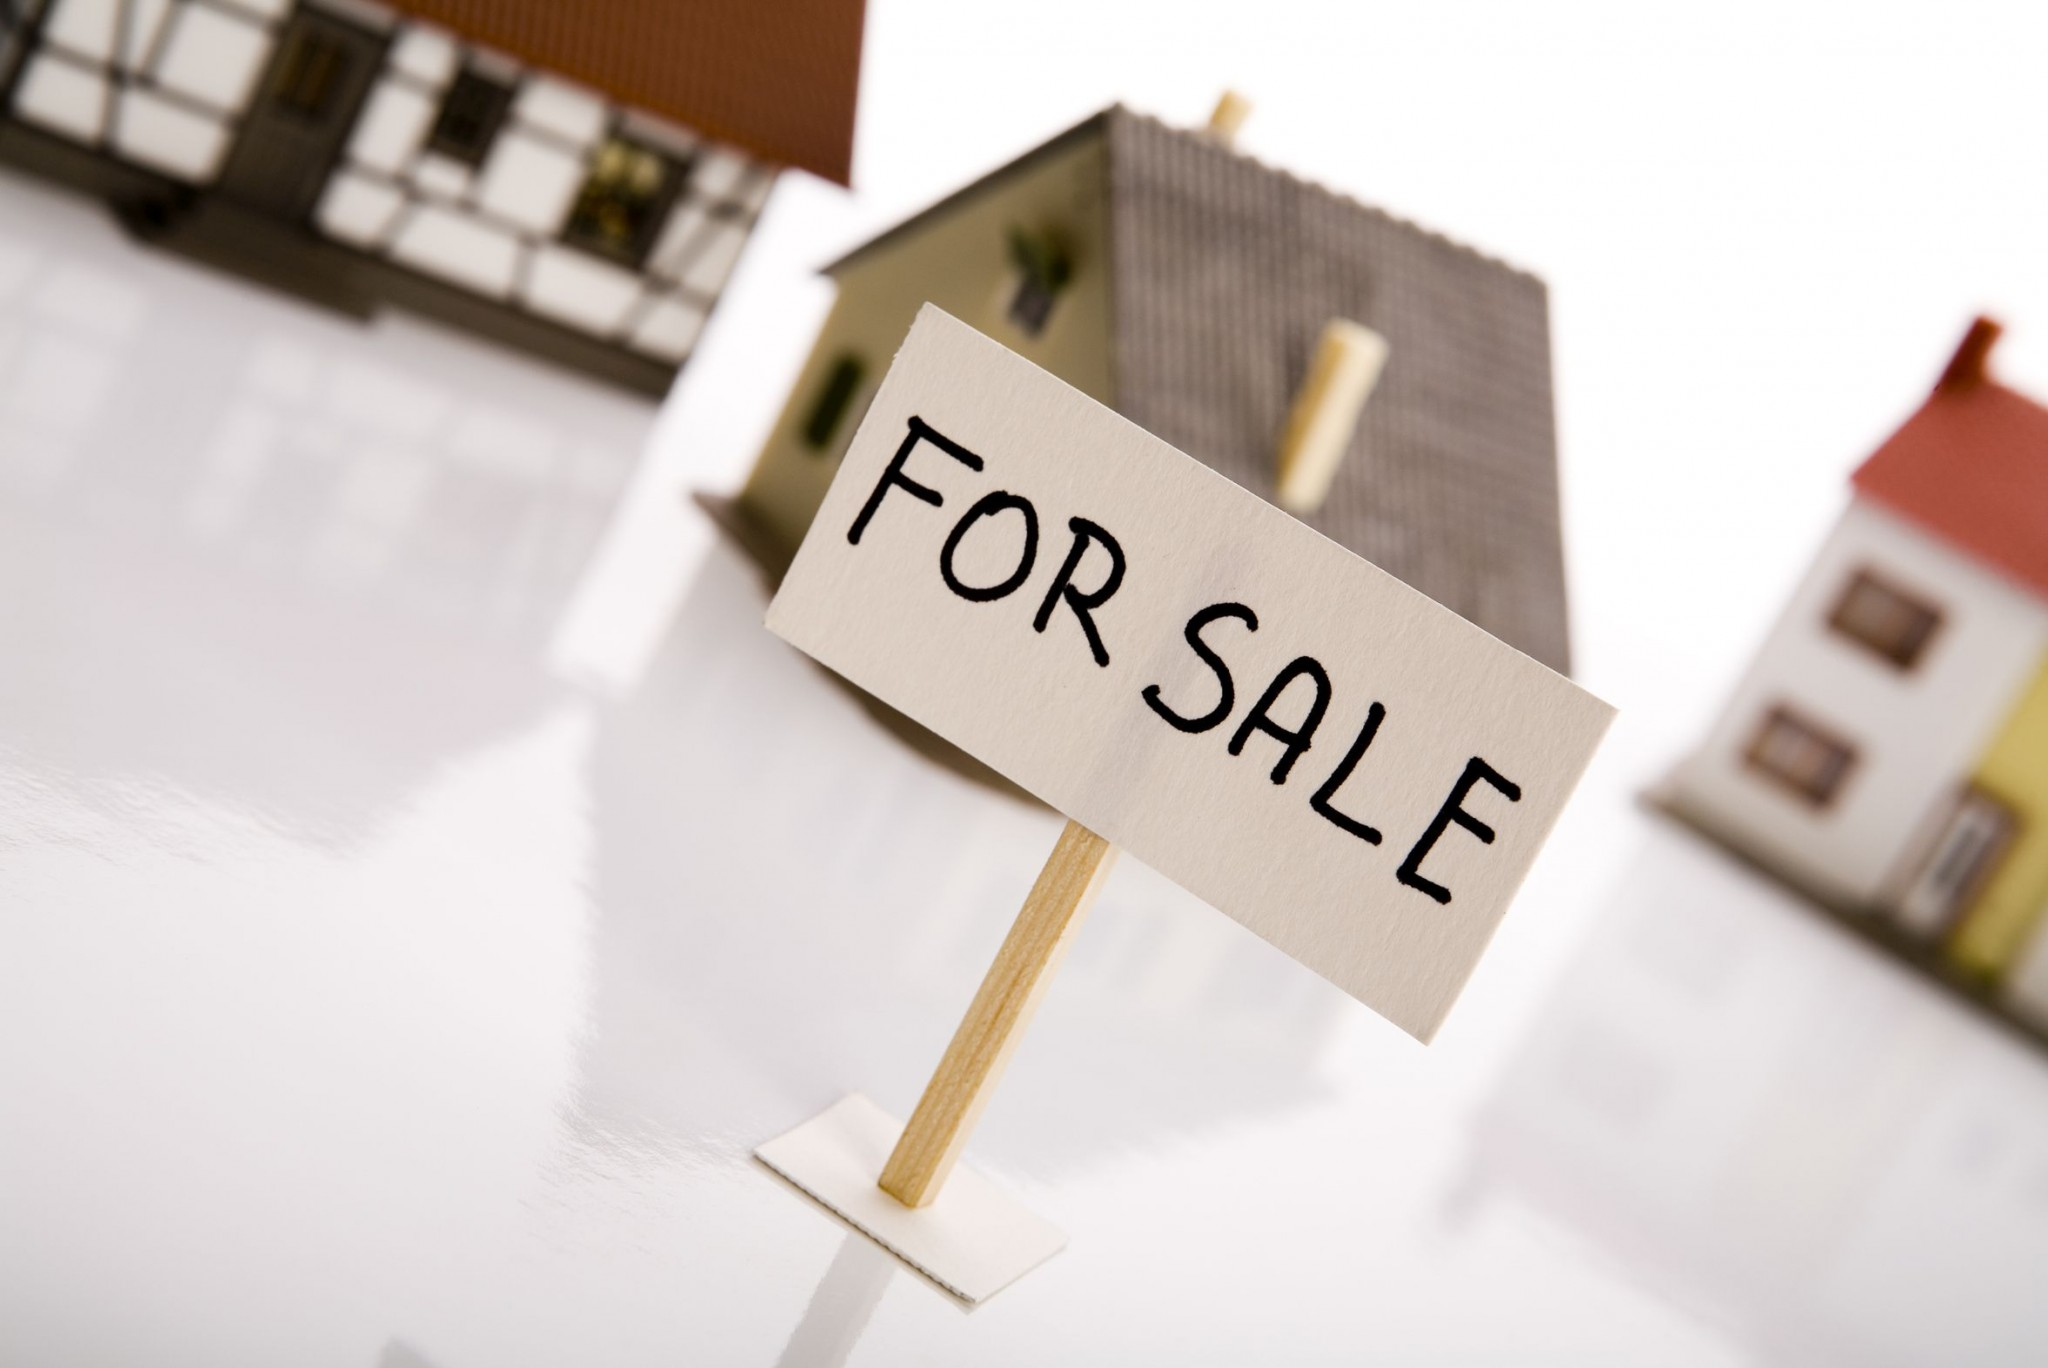 Selling Property - Property Solicitor Tralee